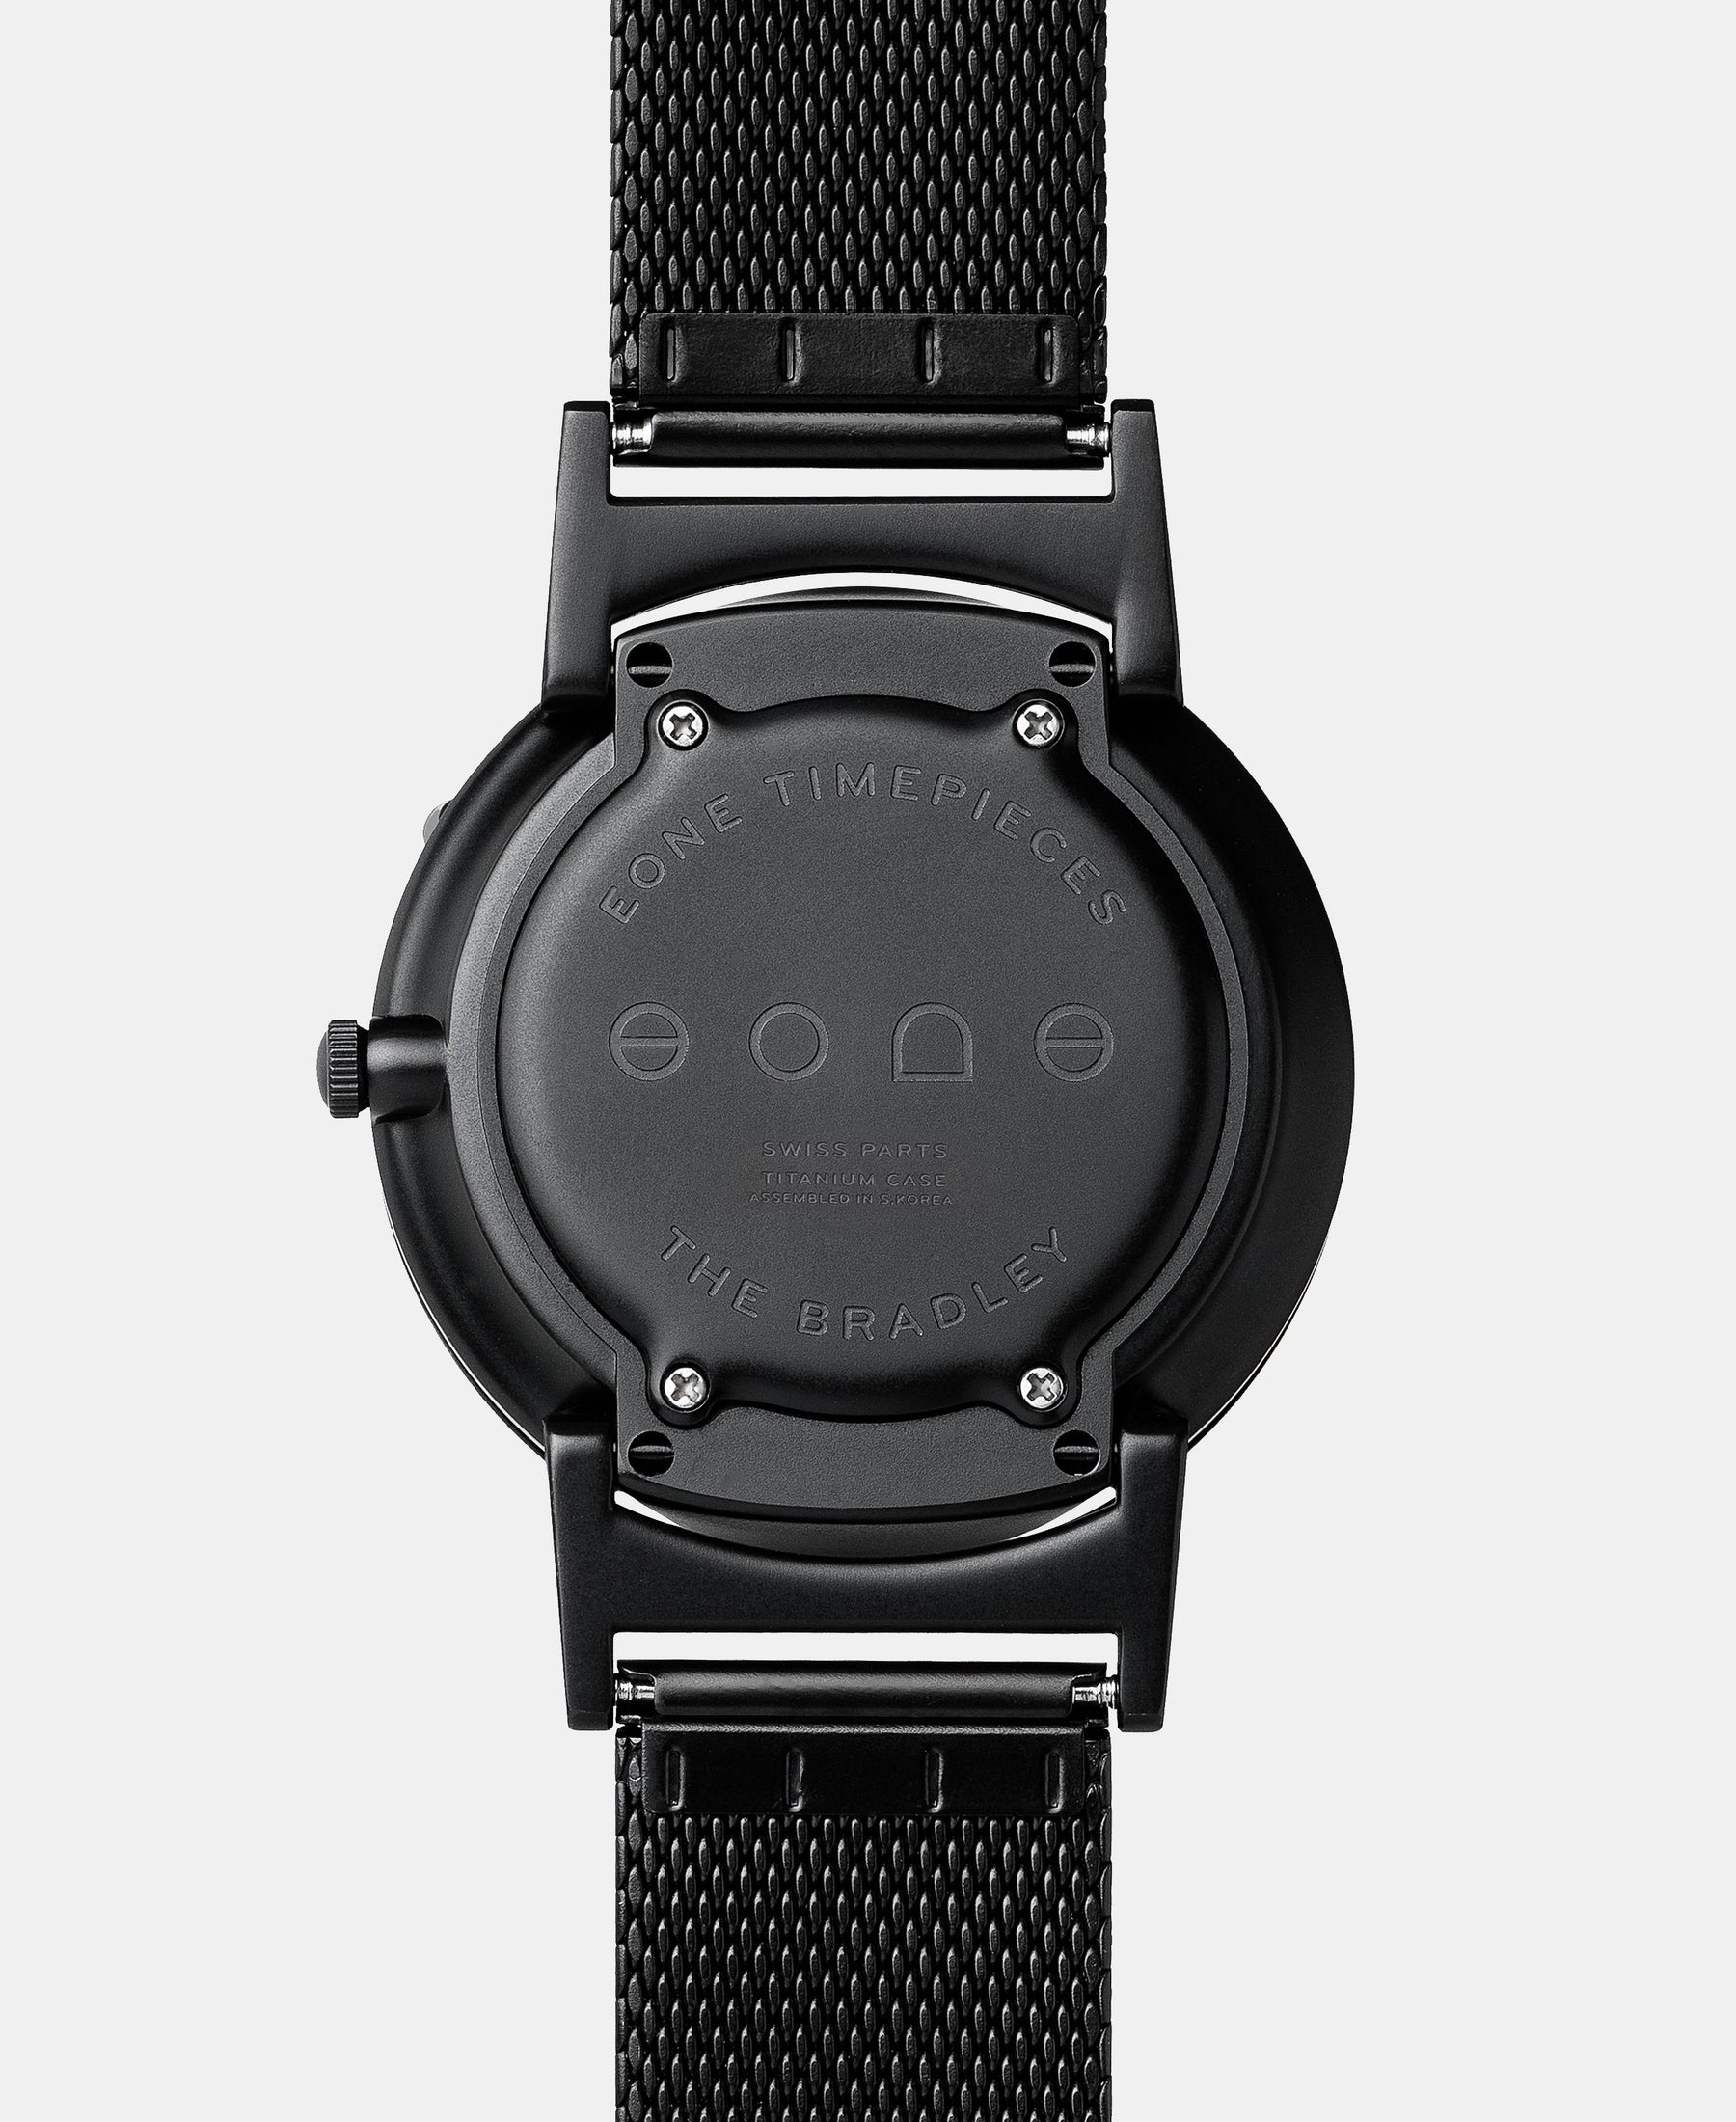 Load image into Gallery viewer, A photo of the back of the watch, showing the back plate engraved with the Eone logo.